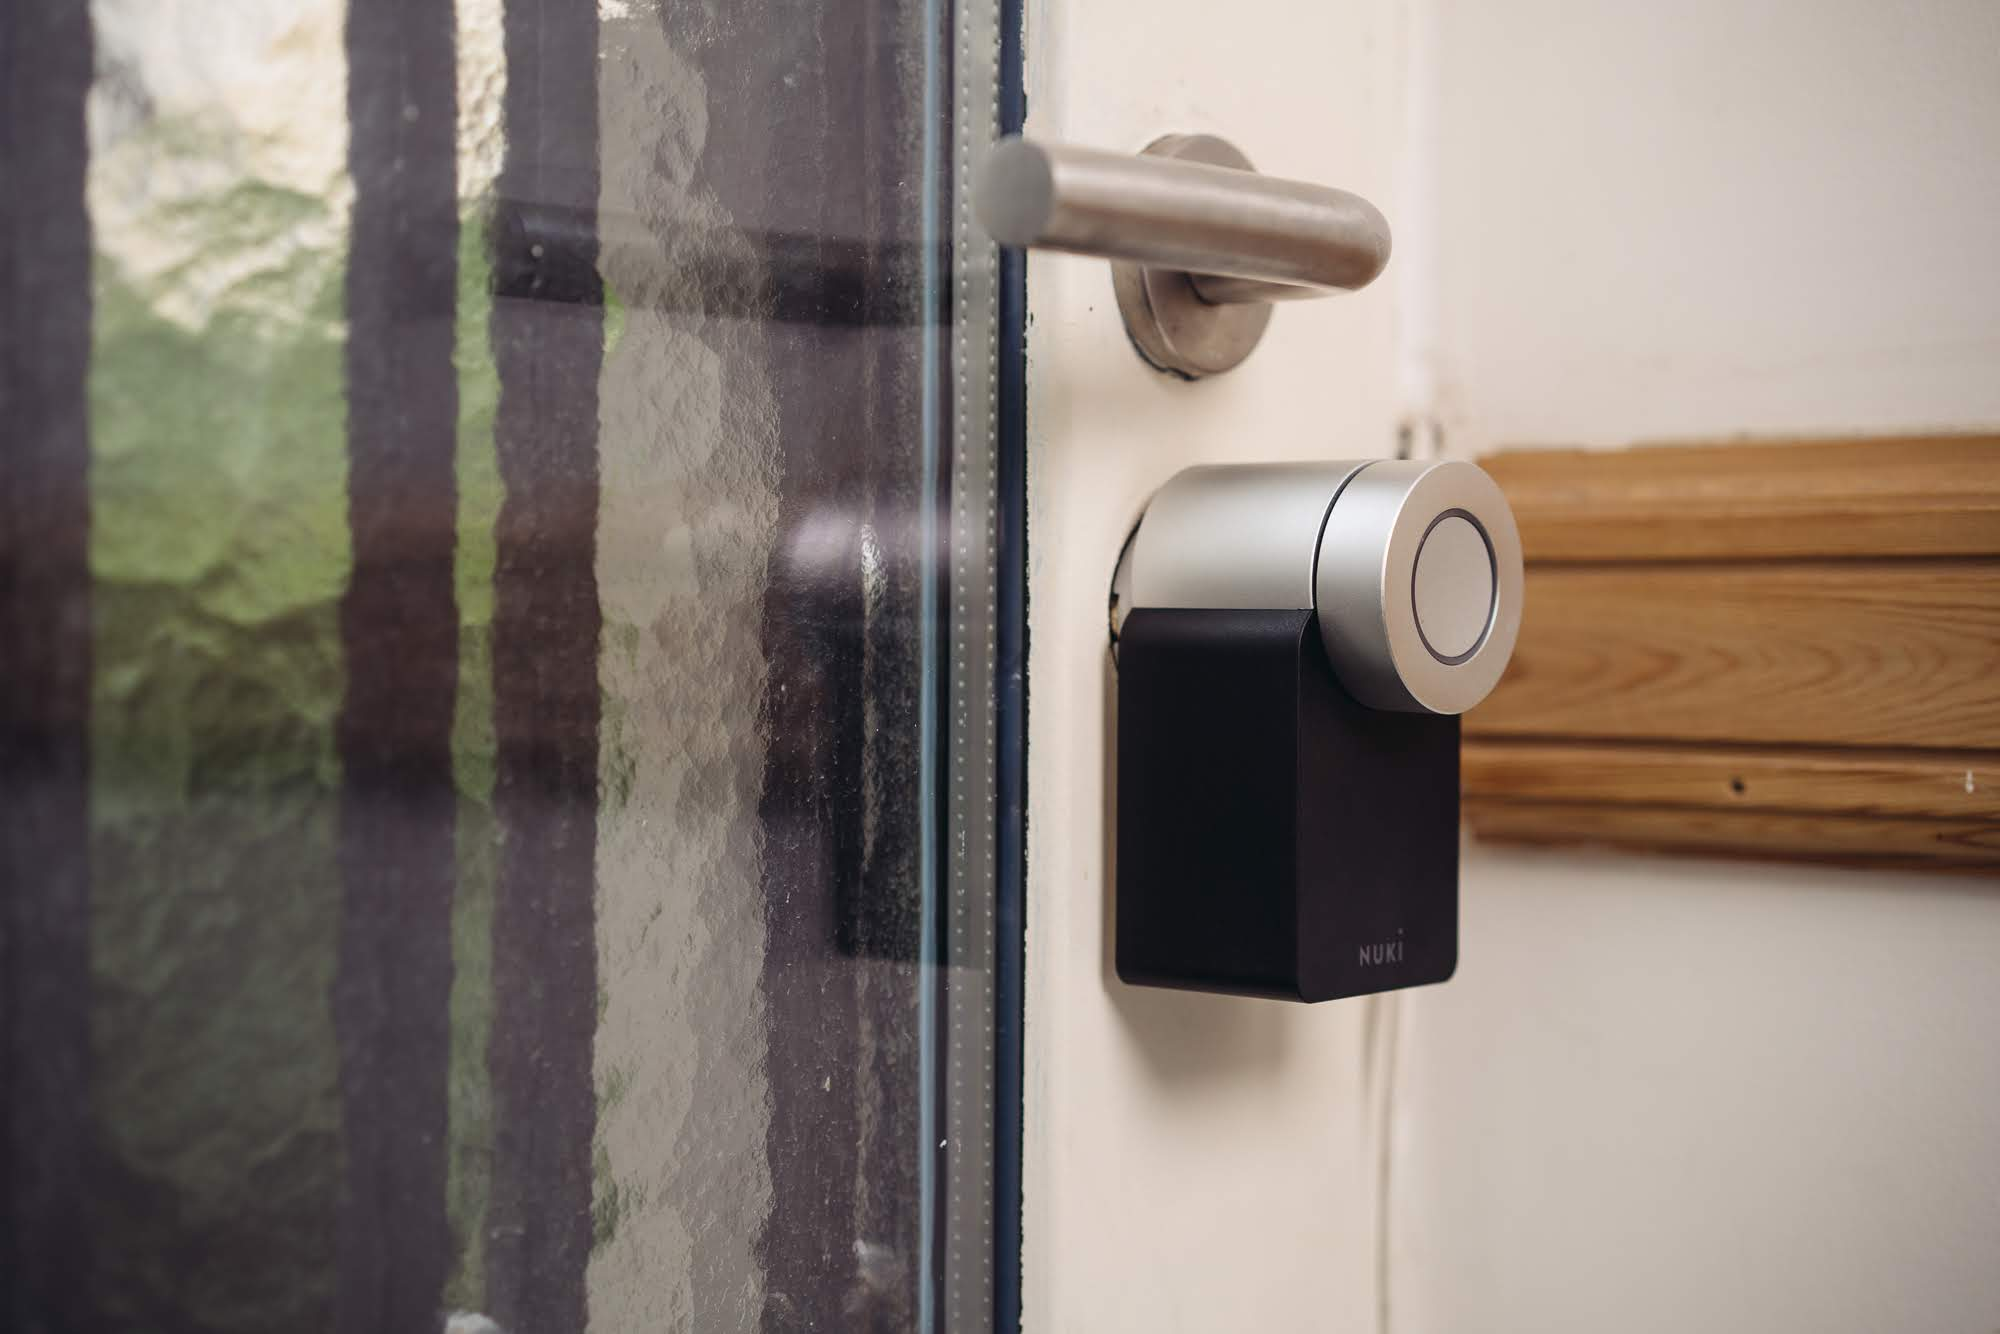 Where the magic happens: the smart lock is integrated into the door and connected to the customer's phone.